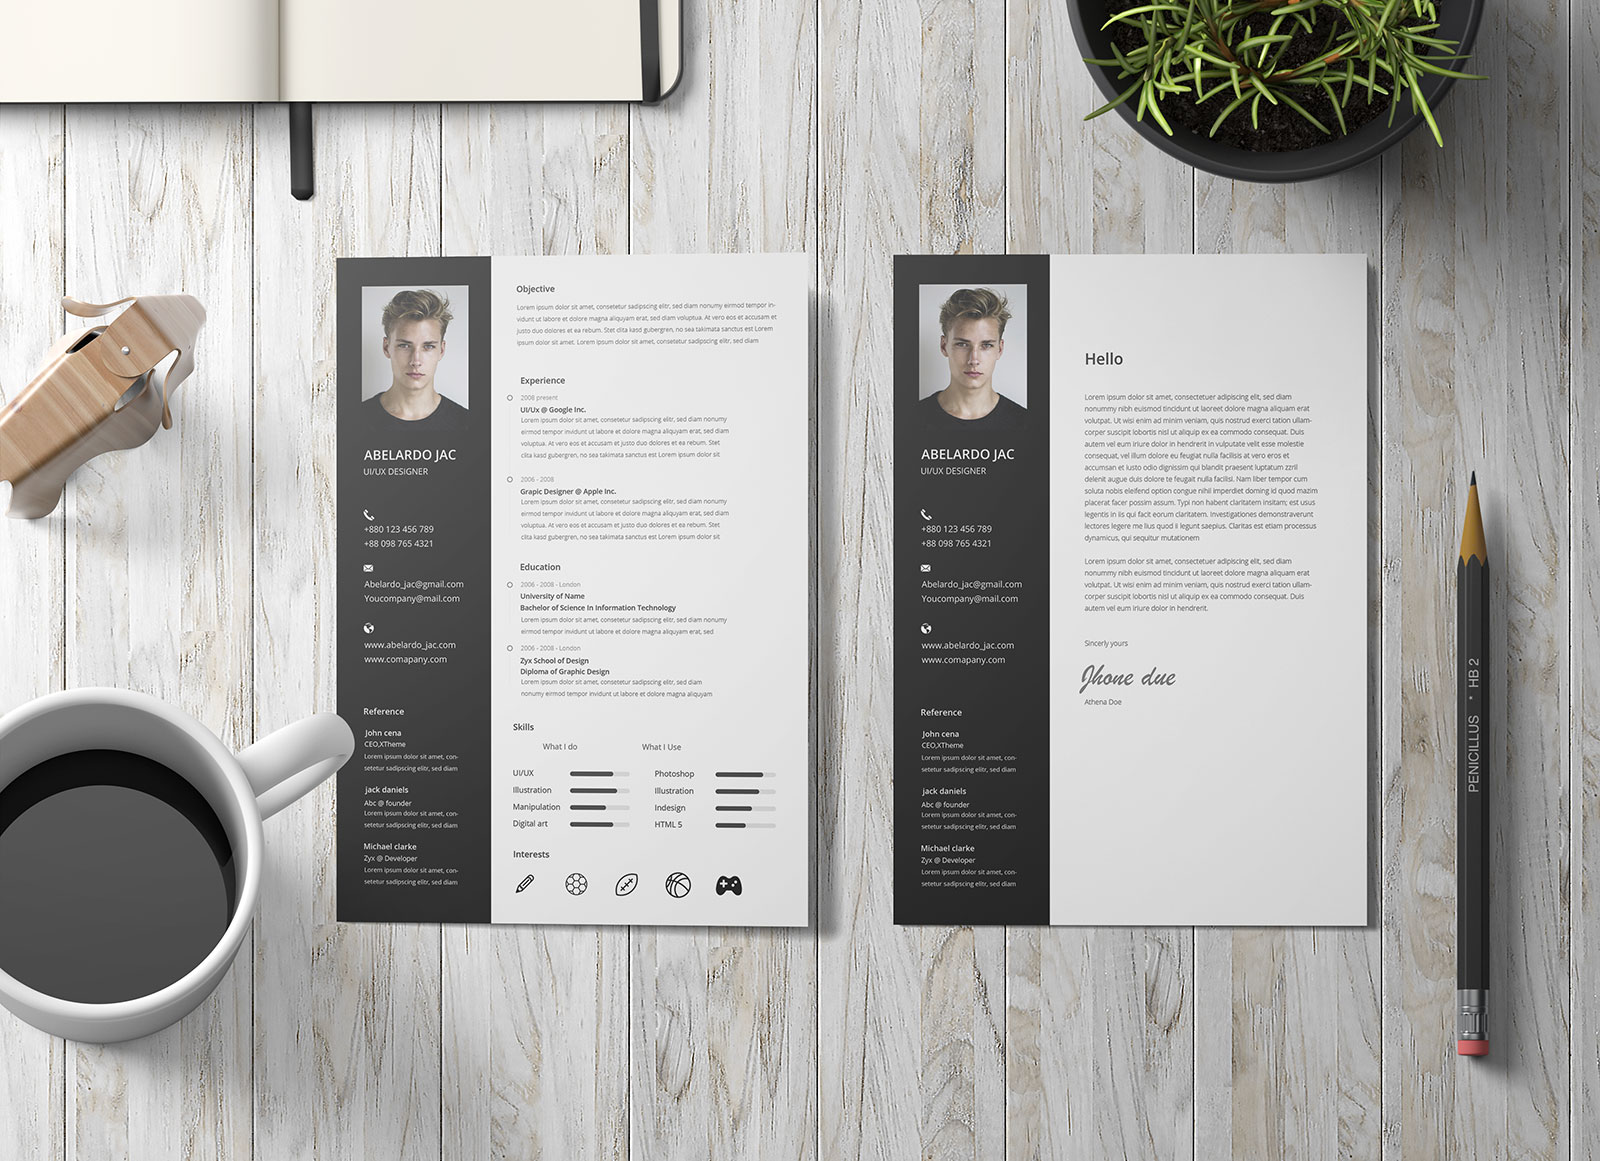 Free-PSD-CV-&-Cover-Letter-Template-Design-for-Web-Designers